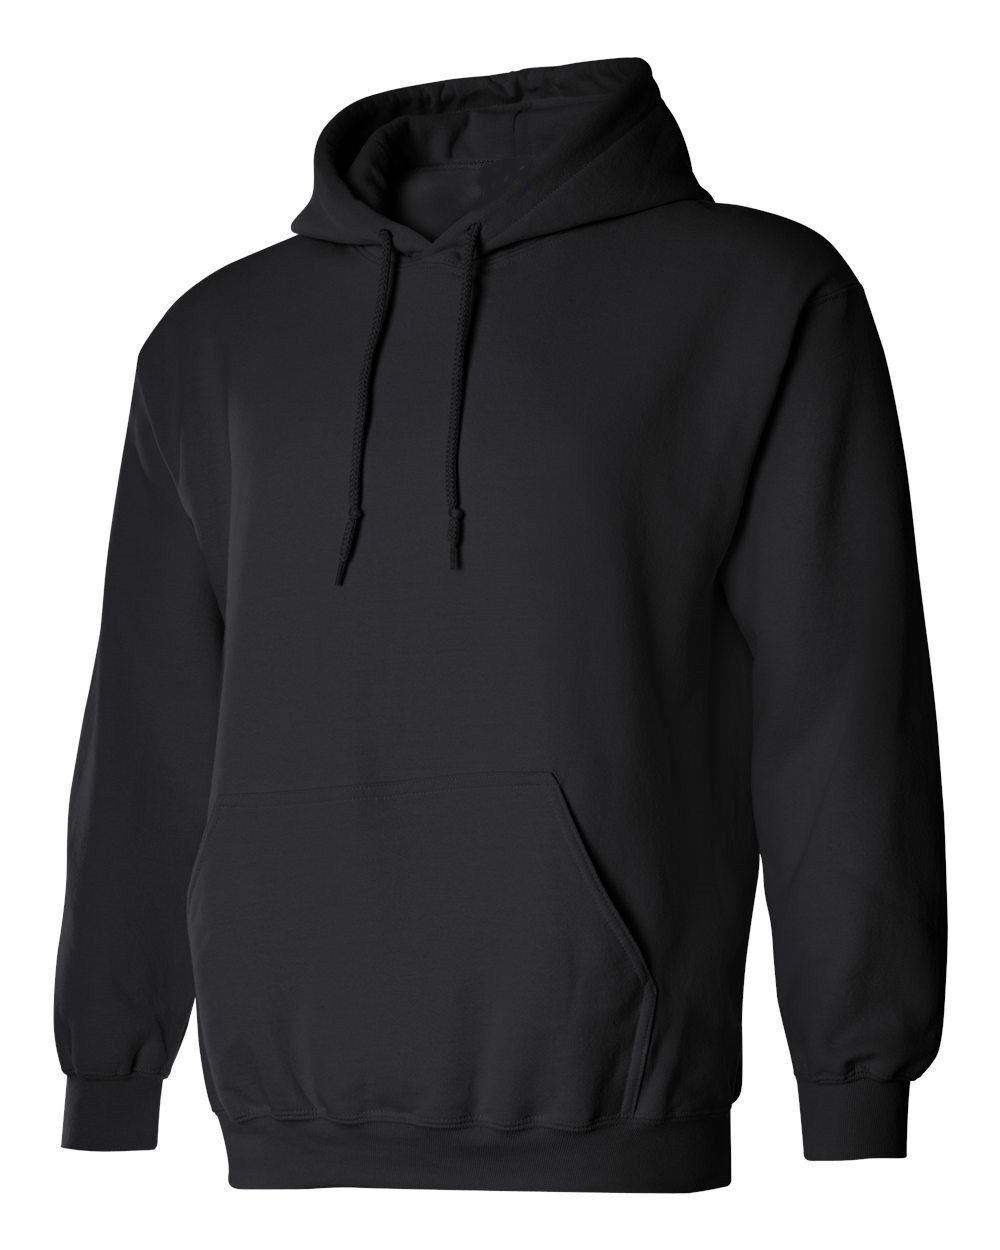 Hoodie Plain Blank Sweatshirt Men Women Hooded Pullover Fleece ...